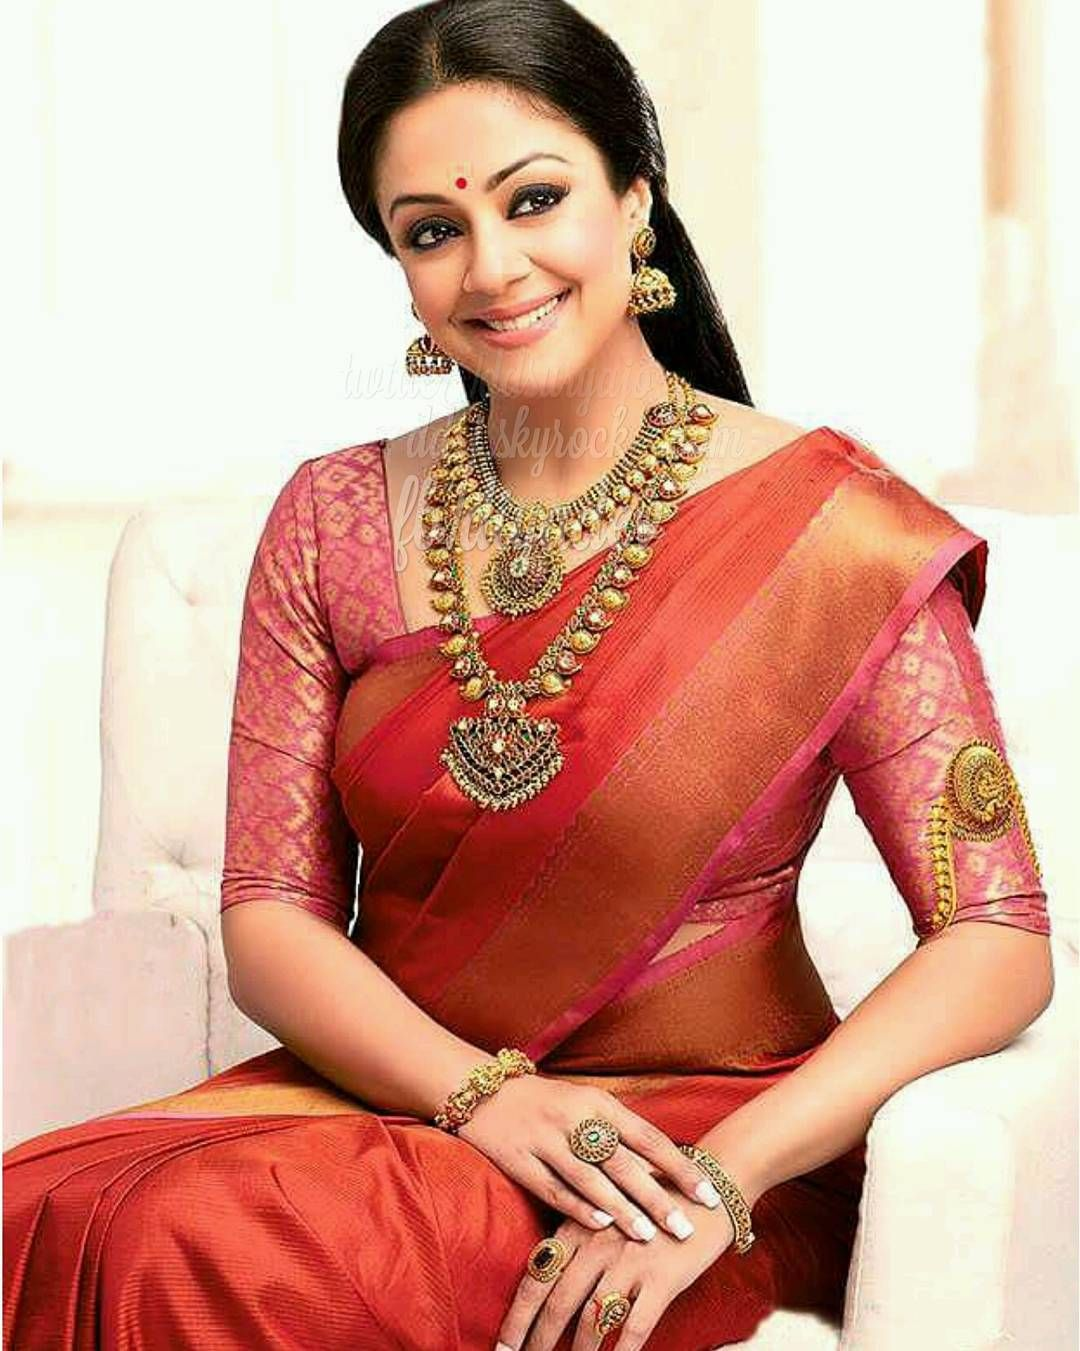 Jyothika in red saree